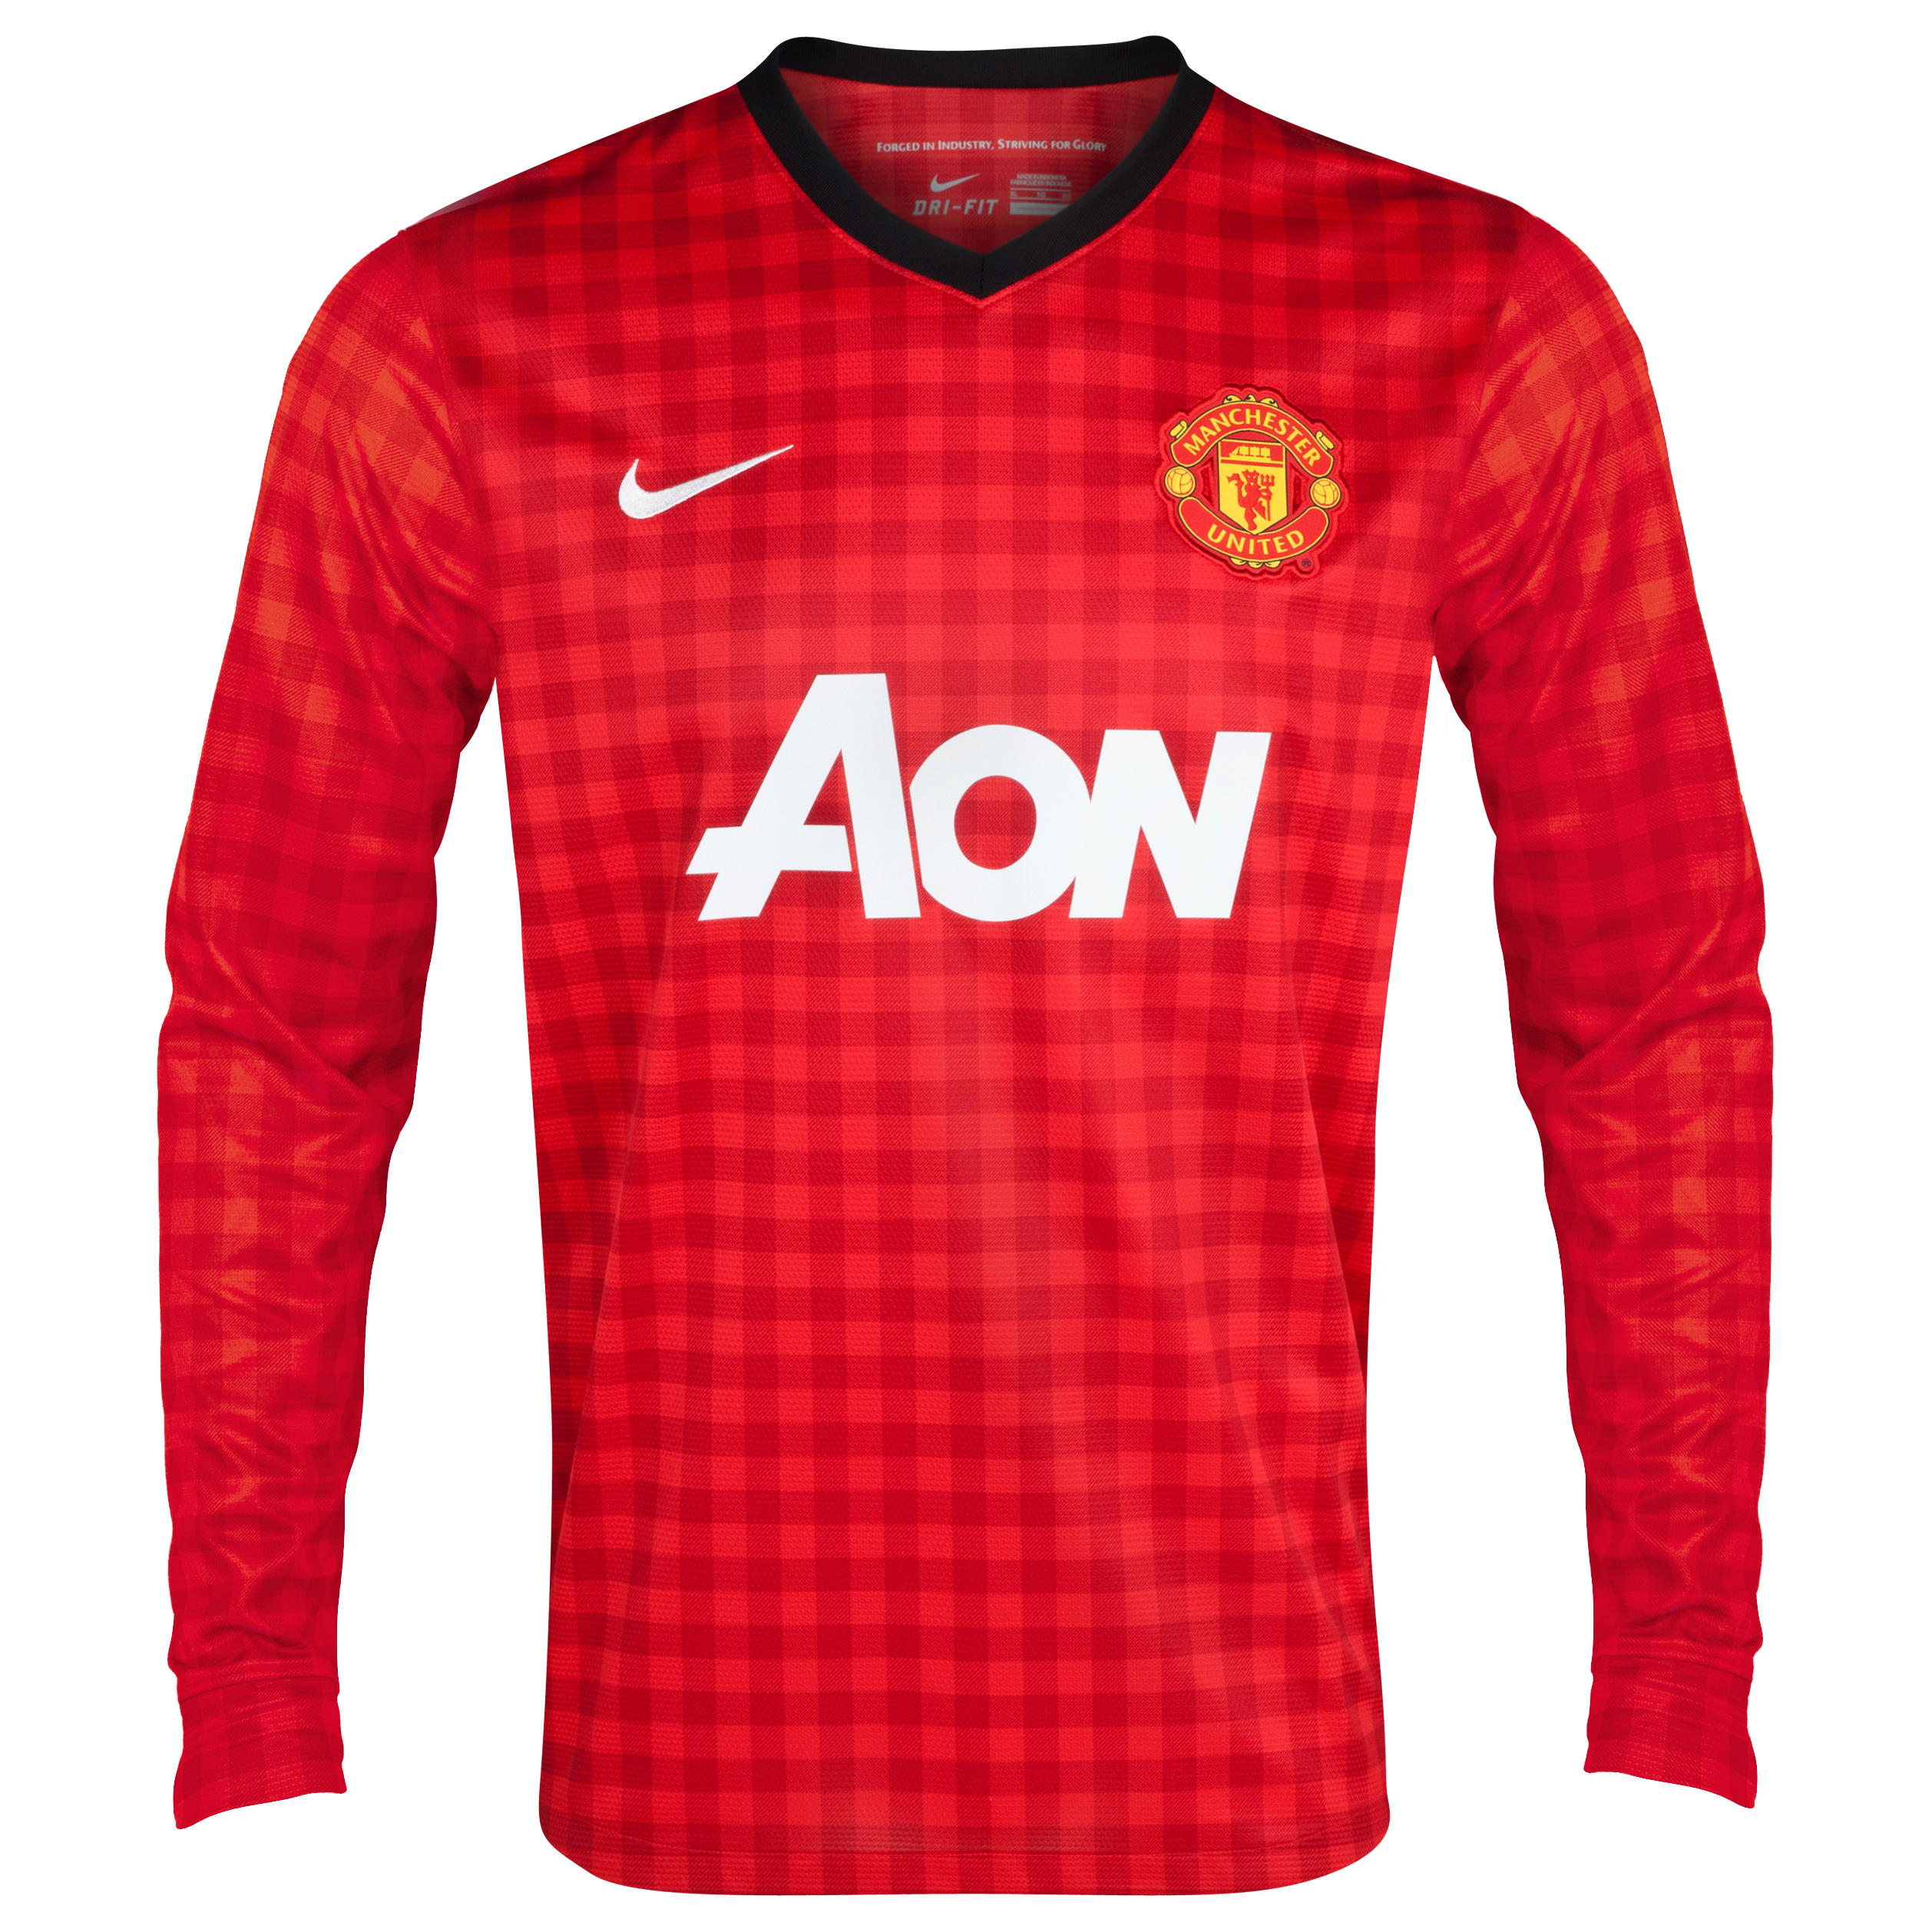 Manchester United Home Shirt 2012/13 - Long Sleeved